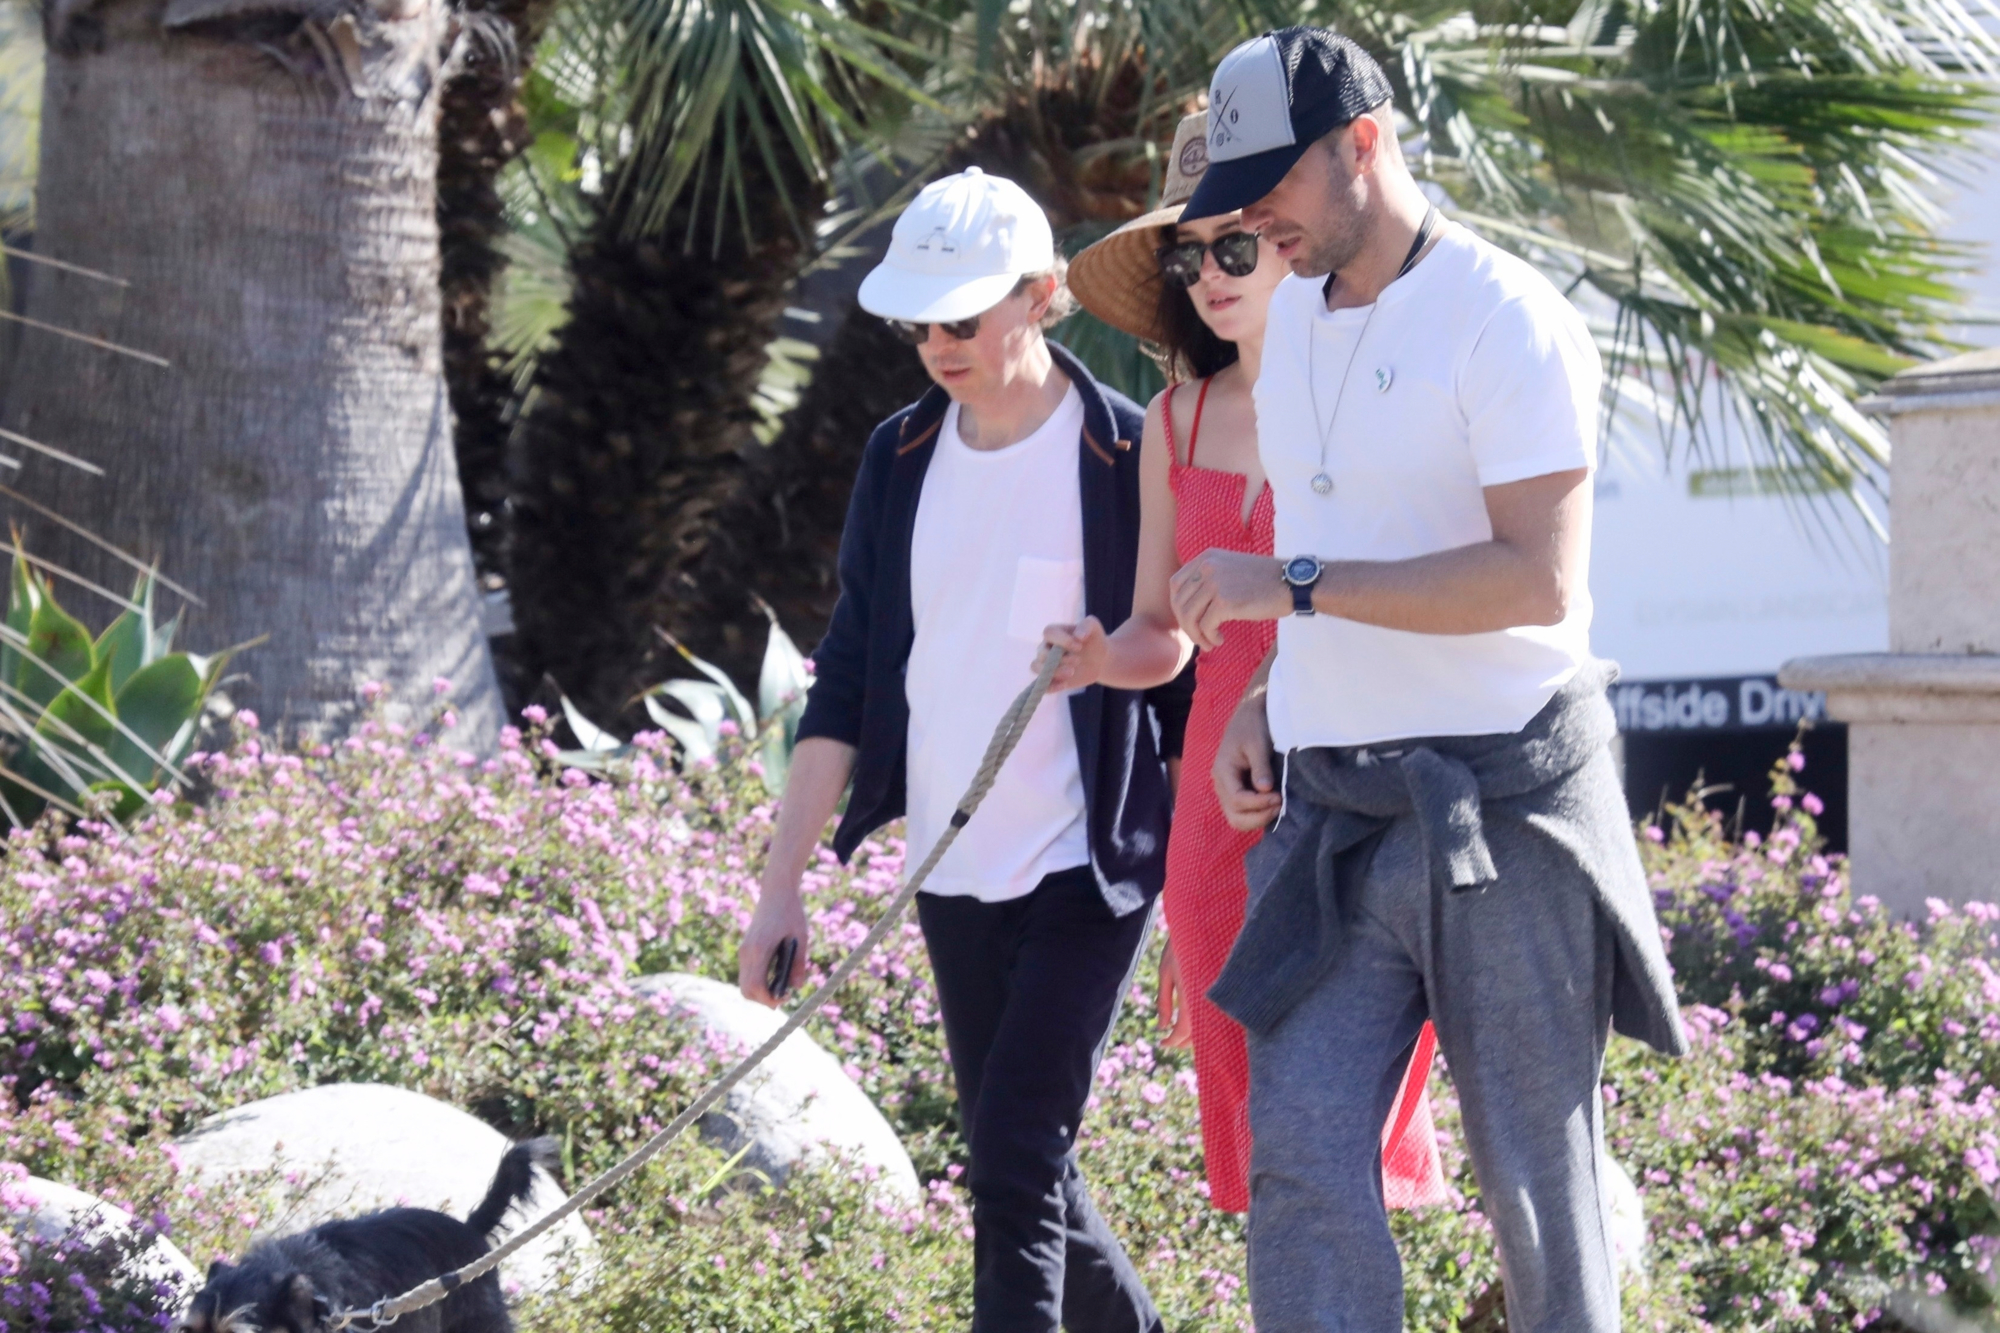 *EXCLUSIVE* Chris Martin and Dakota Johnson barefoot in the park with pup